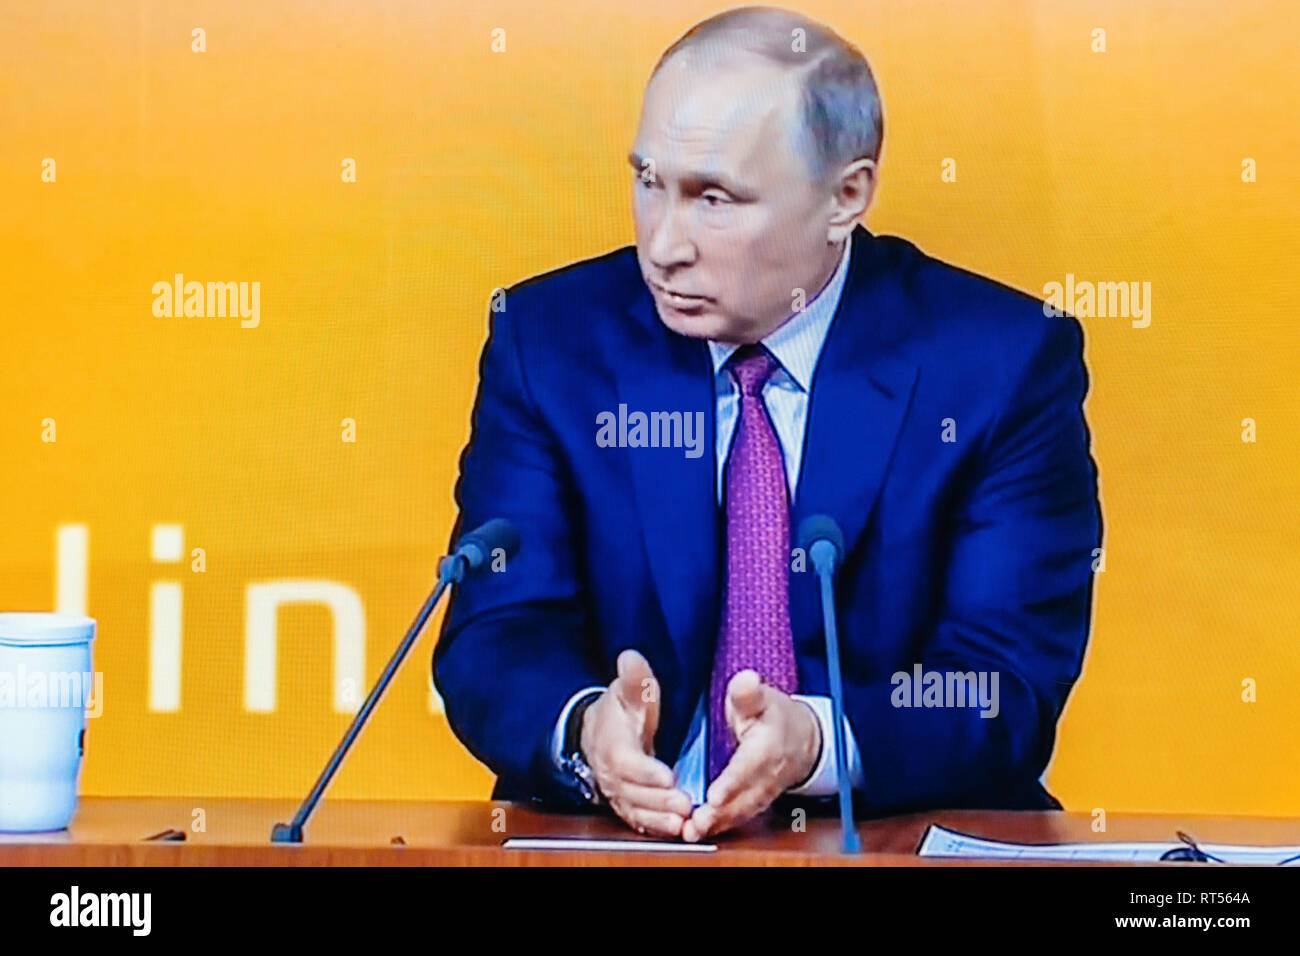 PARIS, FRANCE - DEC 14, 2017: Watching Youtube live channel of Rossiya RTR the Russian President Vladimir Putin give final media Q&A before March election - Stock Image